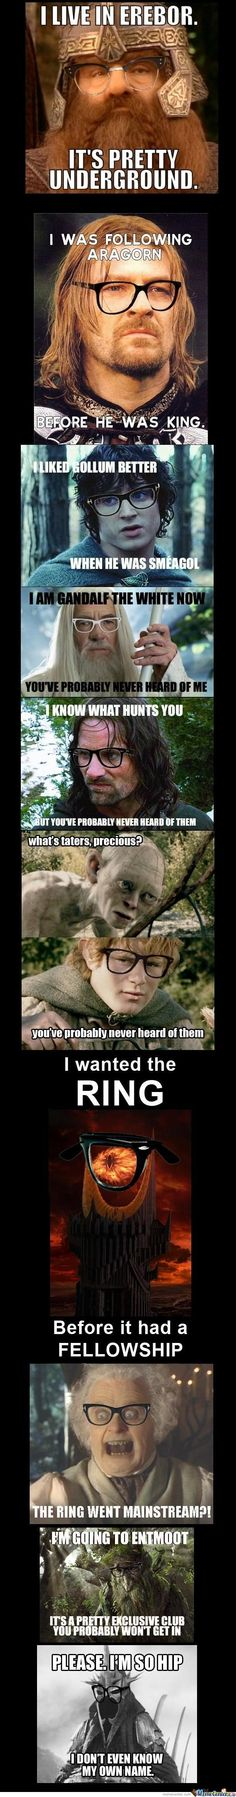 Hipster Lord of the Rings.